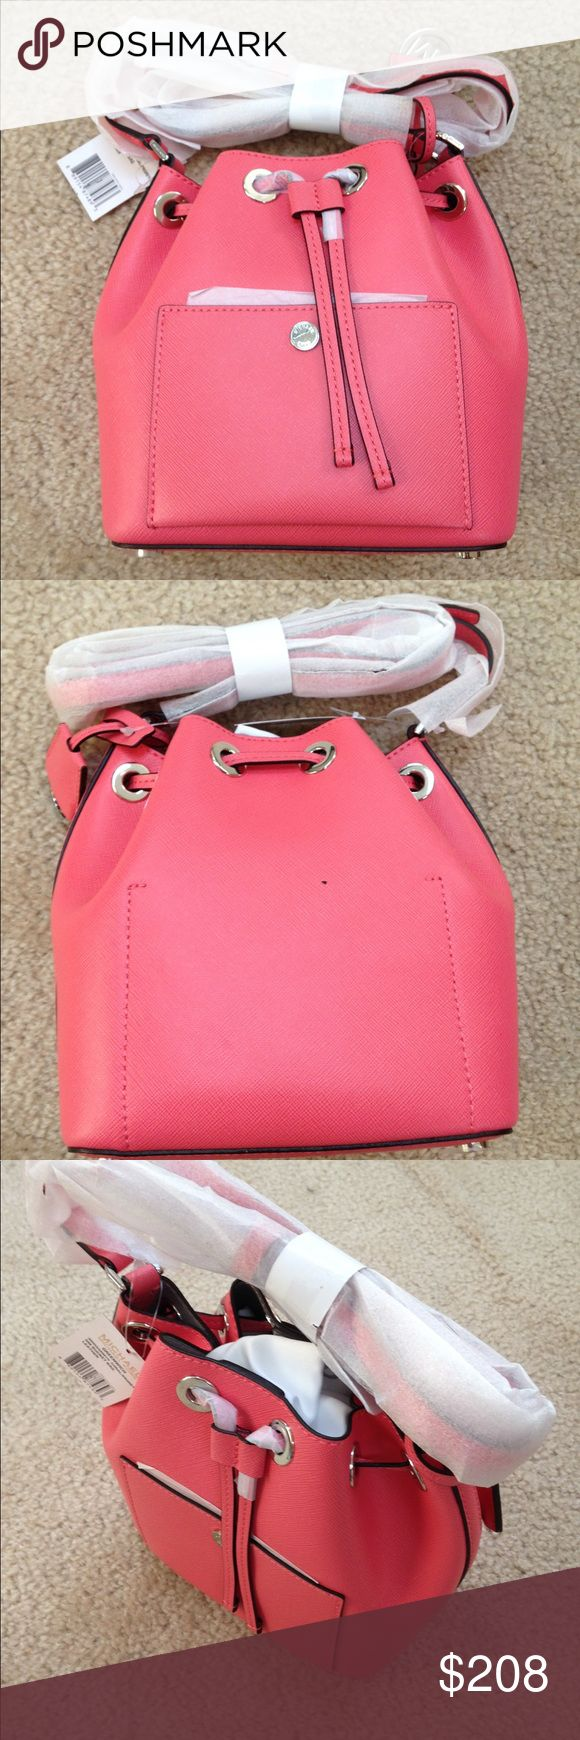 Michael Kors Greenwich small bucket bag in Coral Michael Kors Greenwich small bucket bag in Coral, brand new with tags and original packaging, style number 30H5SGRM1U. MICHAEL Michael Kors Bags Satchels